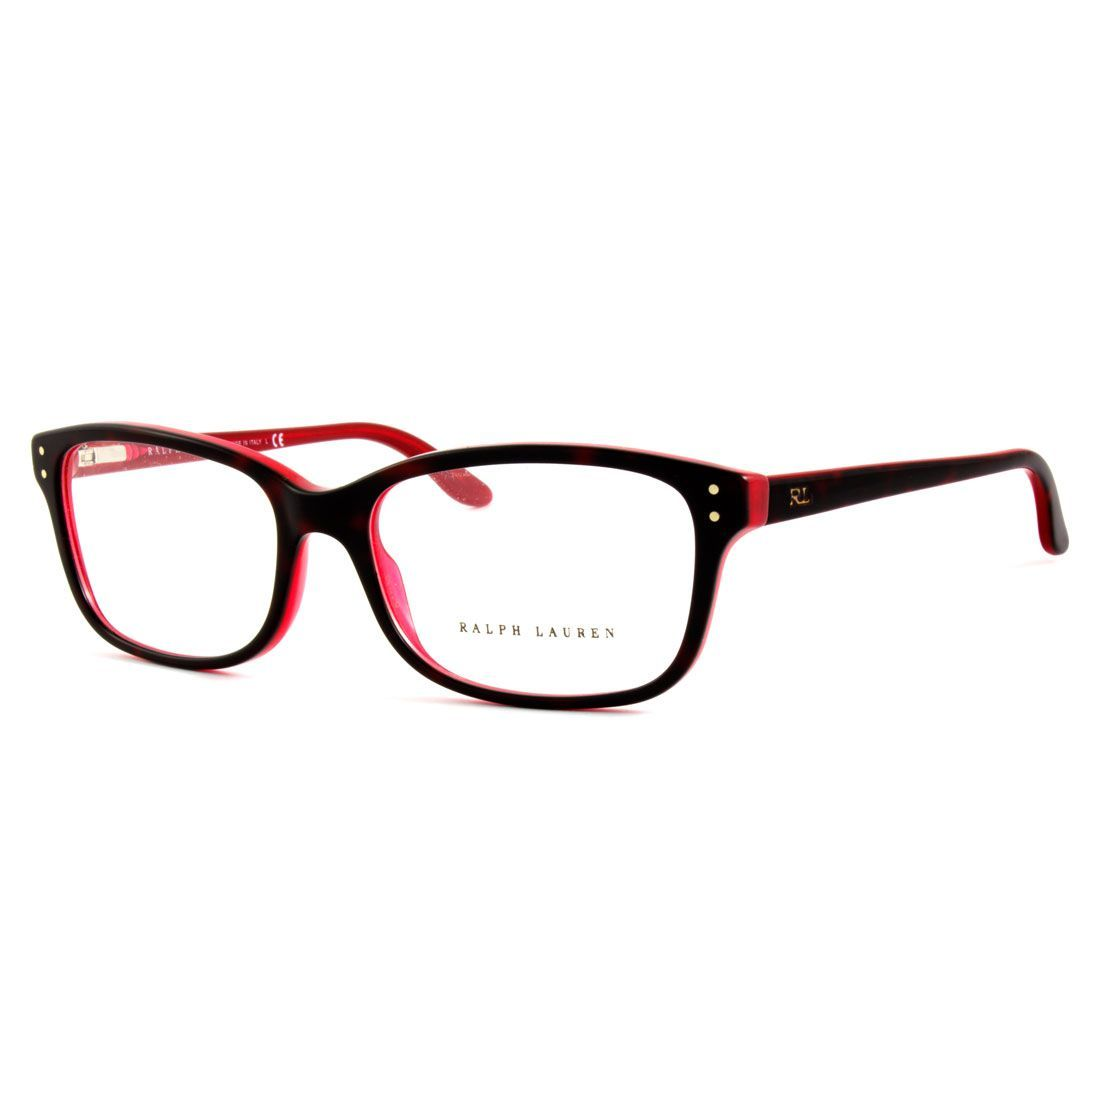 Polo Eyeglass Frame Parts : Ralph Lauren Eyeglasses Parts